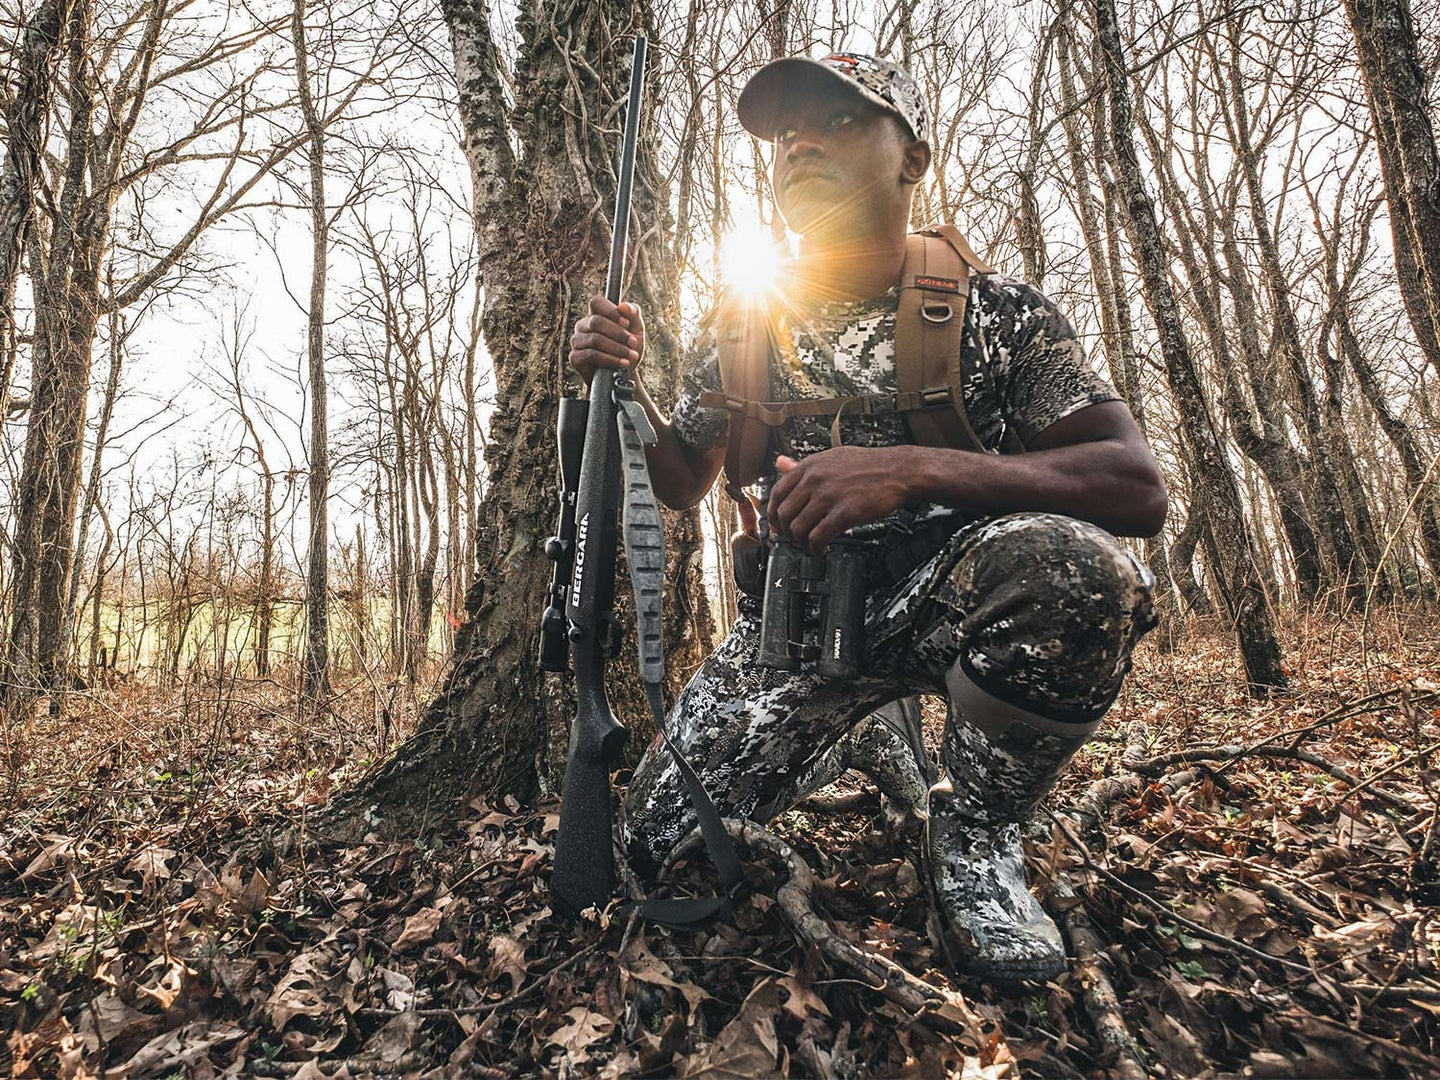 A young deer hunter kneels in the woods wearing full camo gear and holding a rifle in one hand.